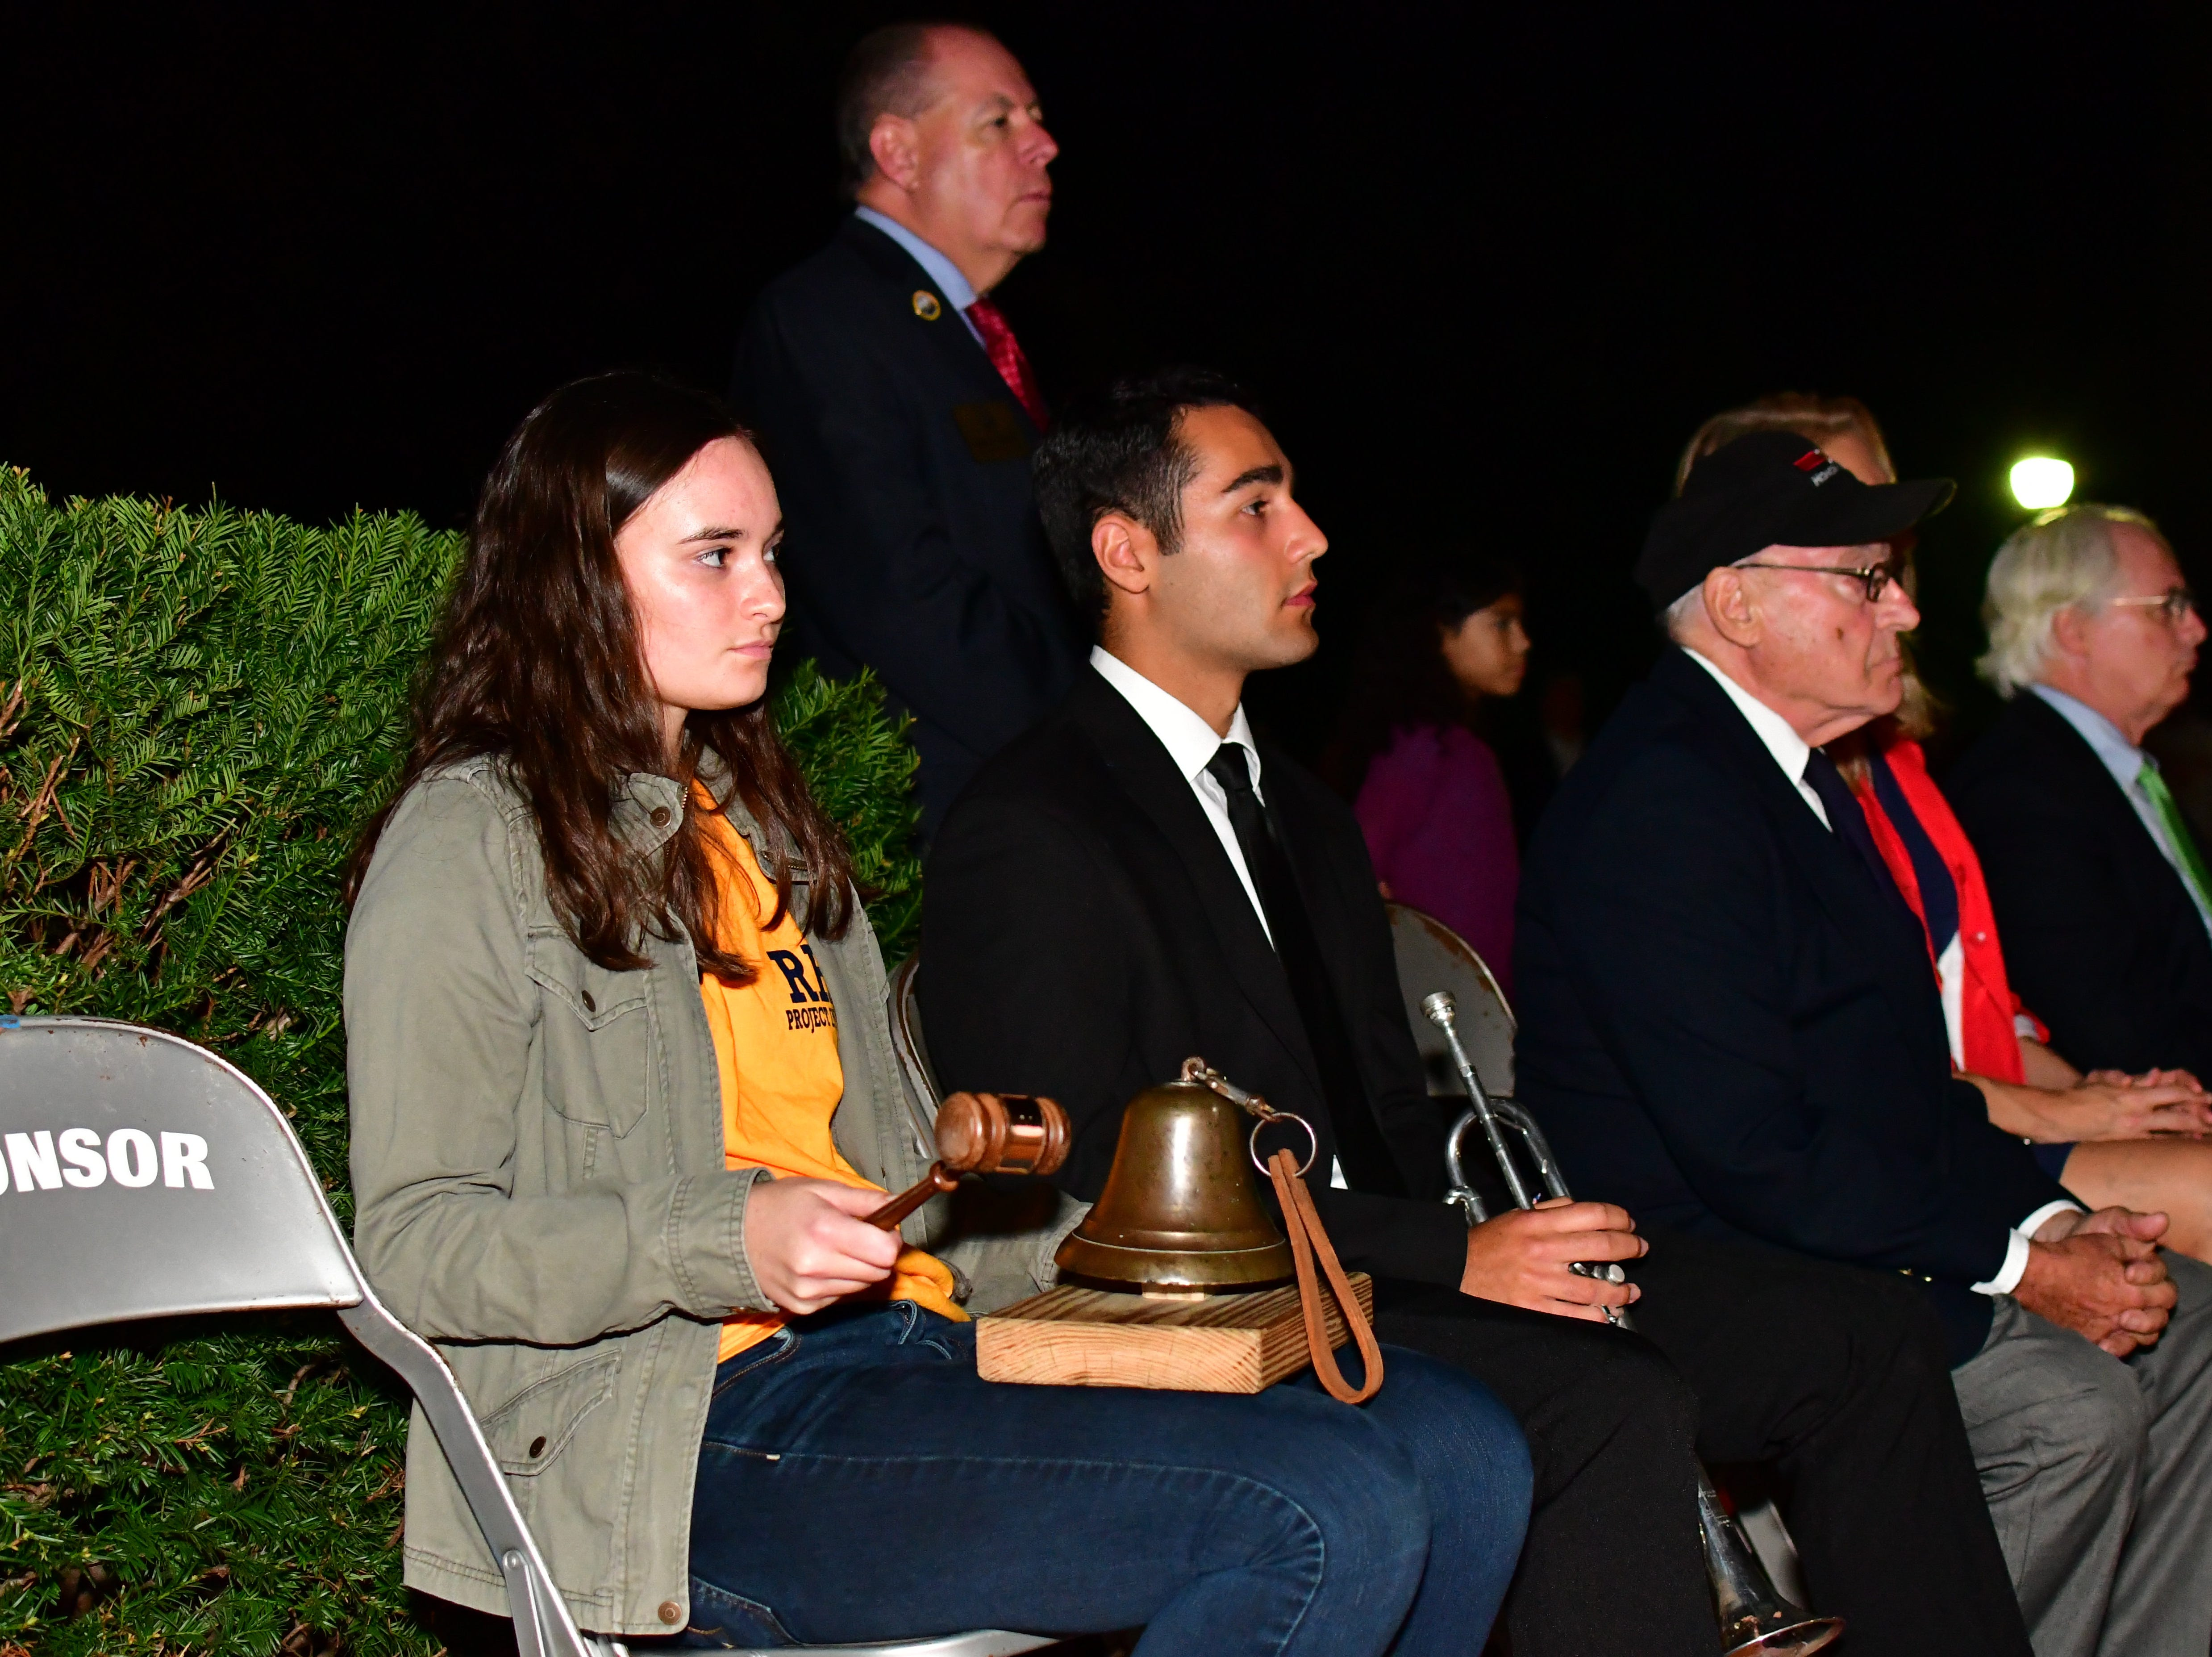 Madeline Grbic, tolling the bell.  The Gold Star Mother's Day Committee sponsored its eighth annual event commemorating Gold Star Mother's Day on Sept. 30, at Van Neste Park, Ridgewood. After a short ceremony, hundreds of luminaries were lit to honor Gold Star Mothers (moms who had lost sons and daughters to the war) and their families.